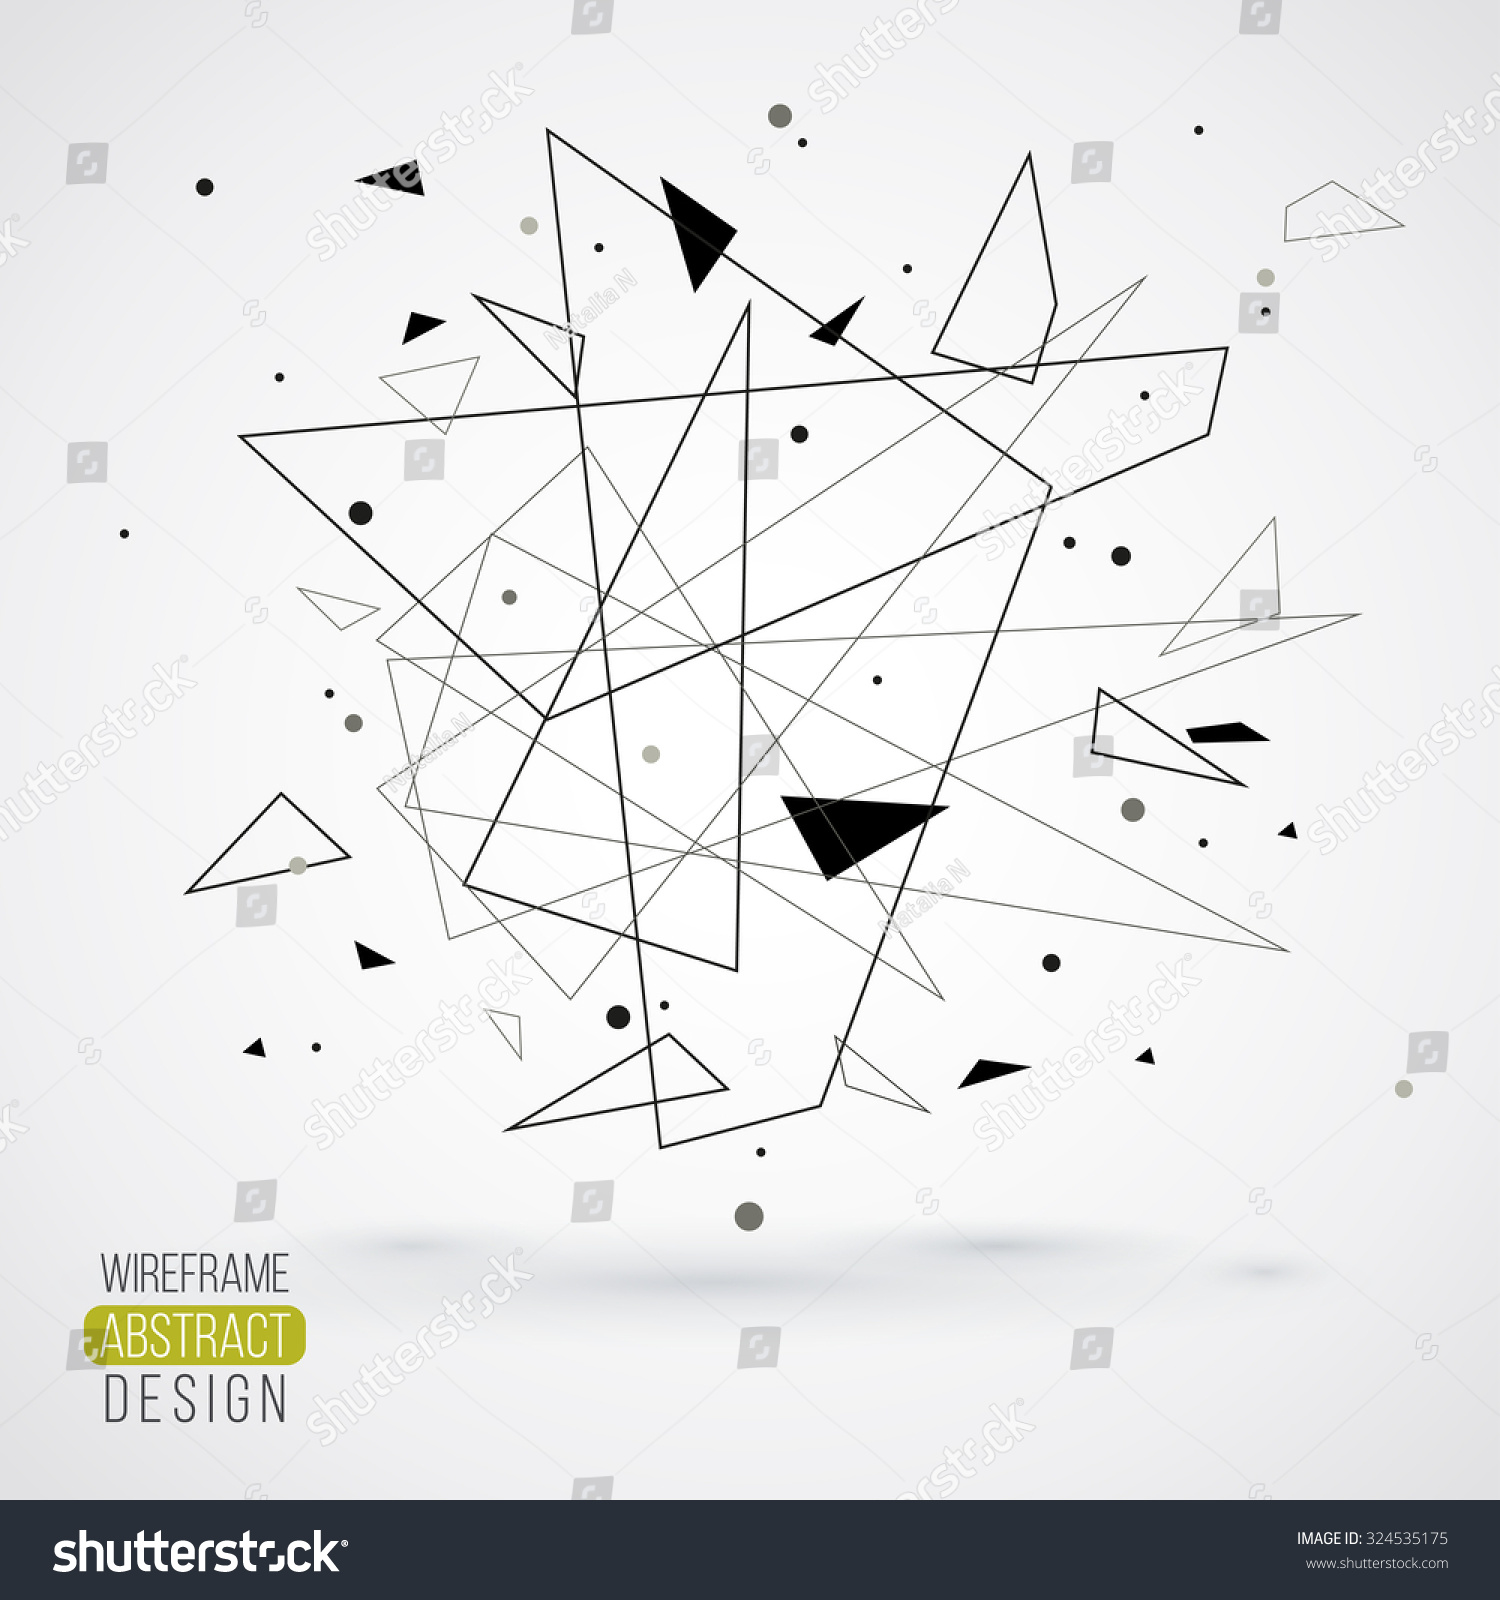 Lines Shapes And Forms : Wireframe mesh element with triangle shapes abstract form